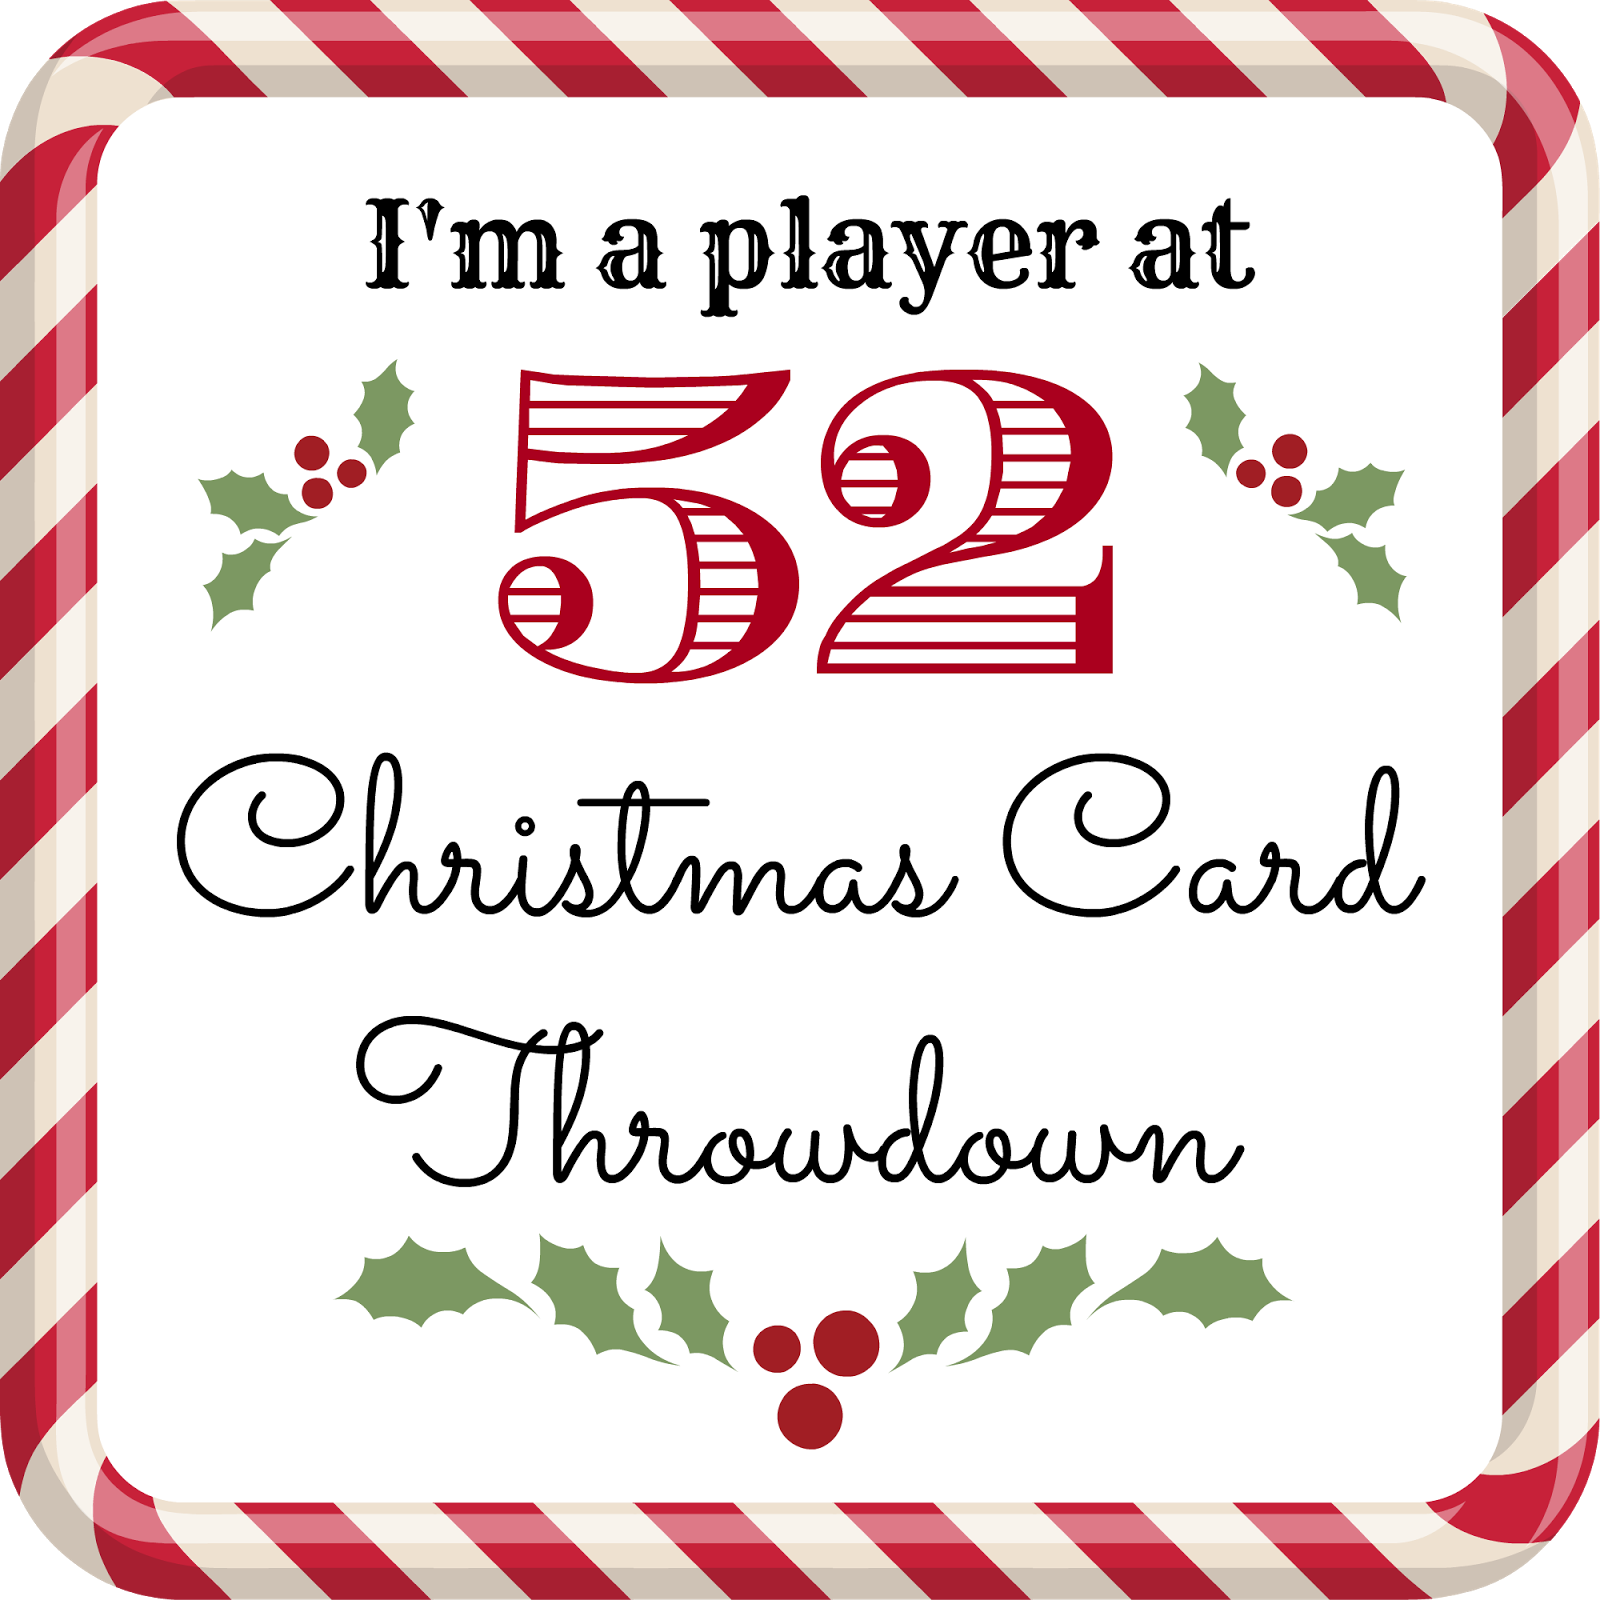 52 Charistmas Card Throwdown